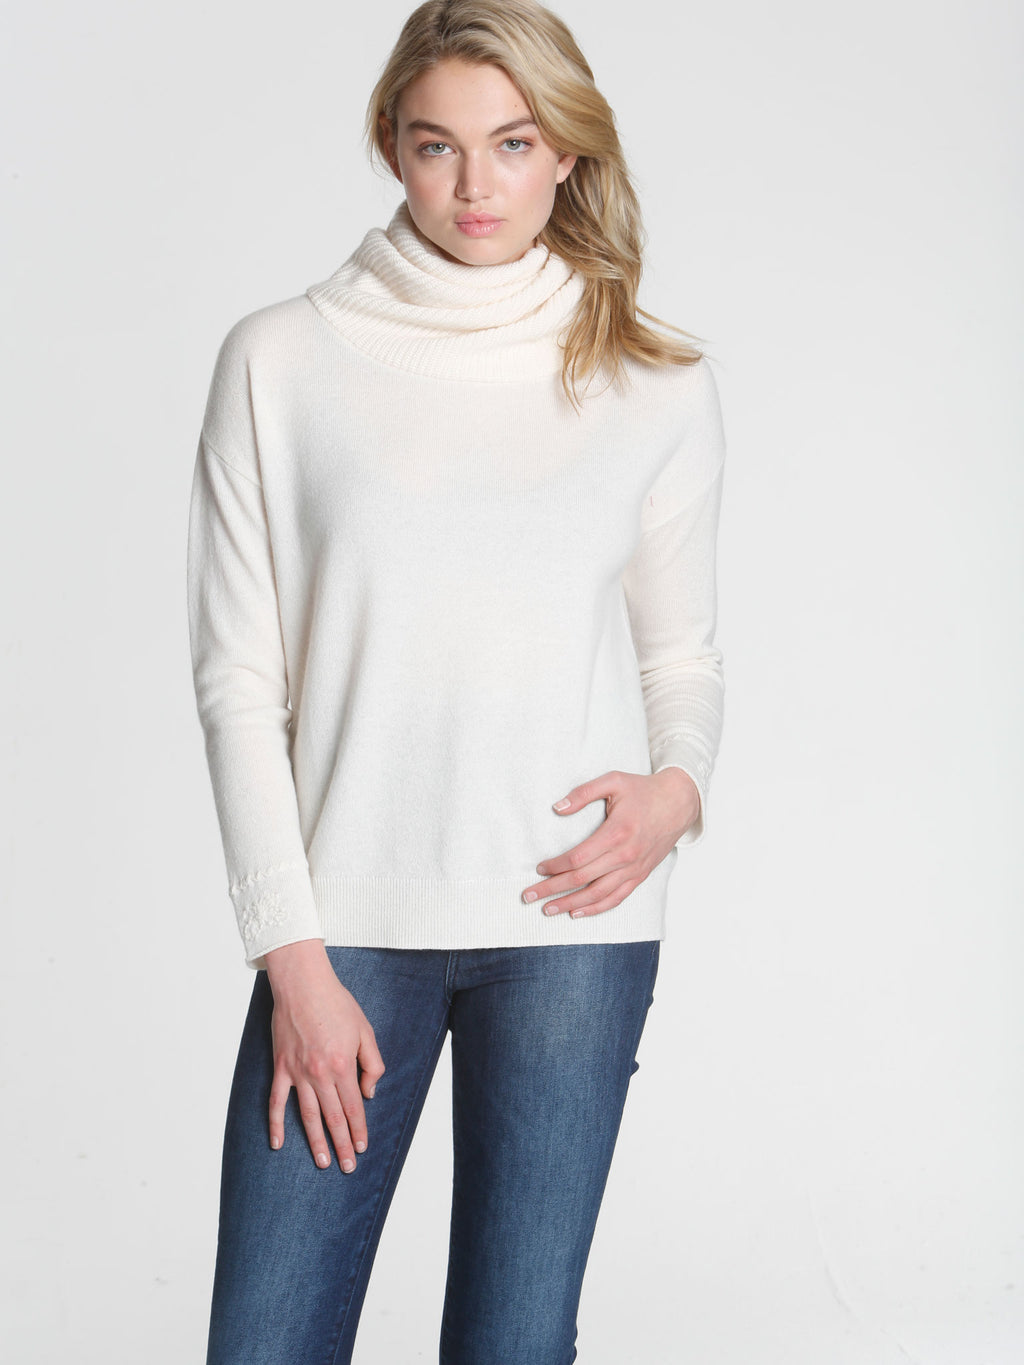 Twisted Scrunch Neck - White